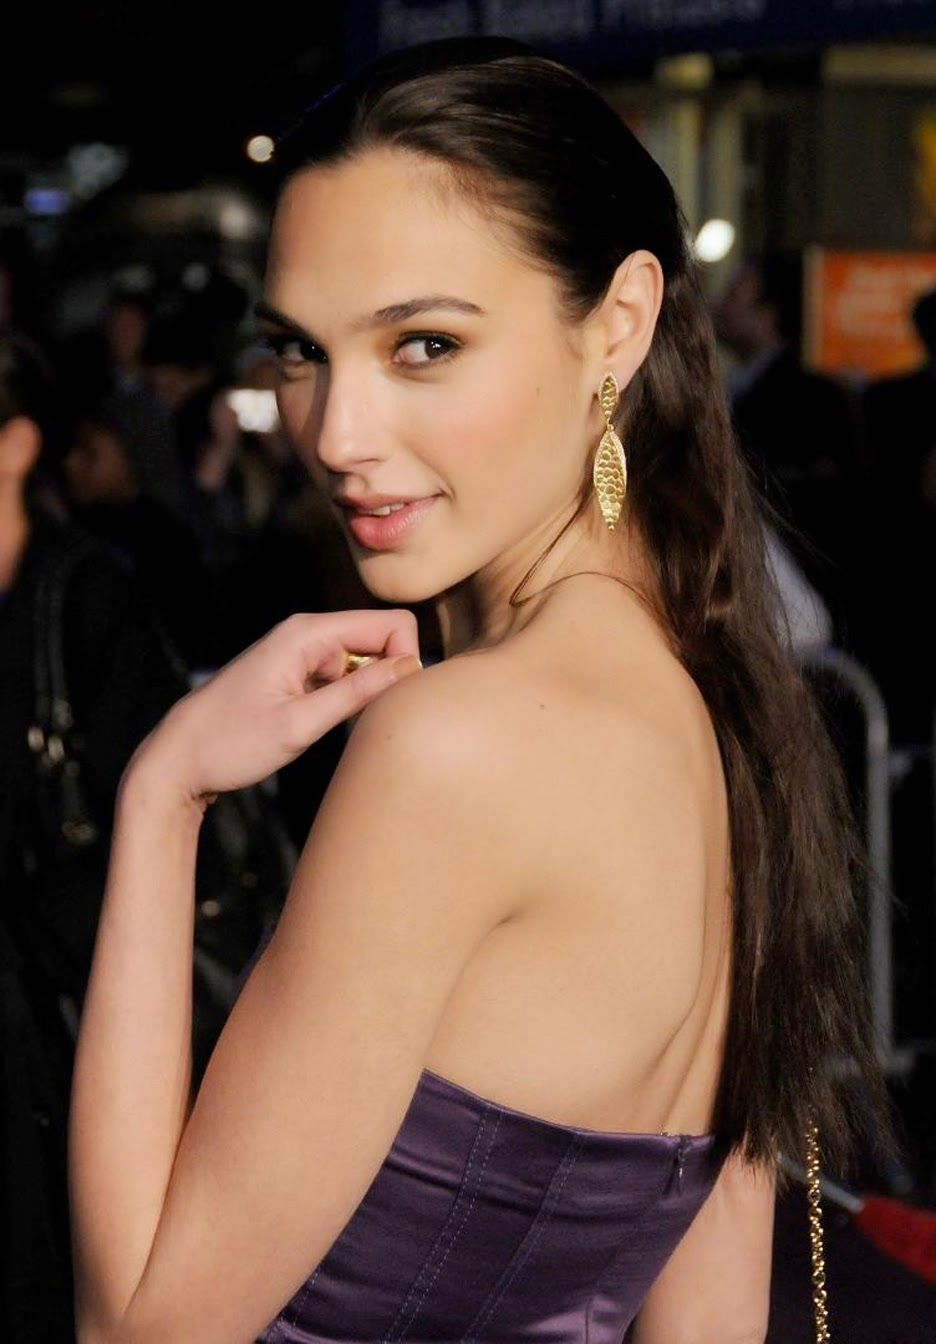 beautiful hairstyles from gal gadot copy her style gal gadot